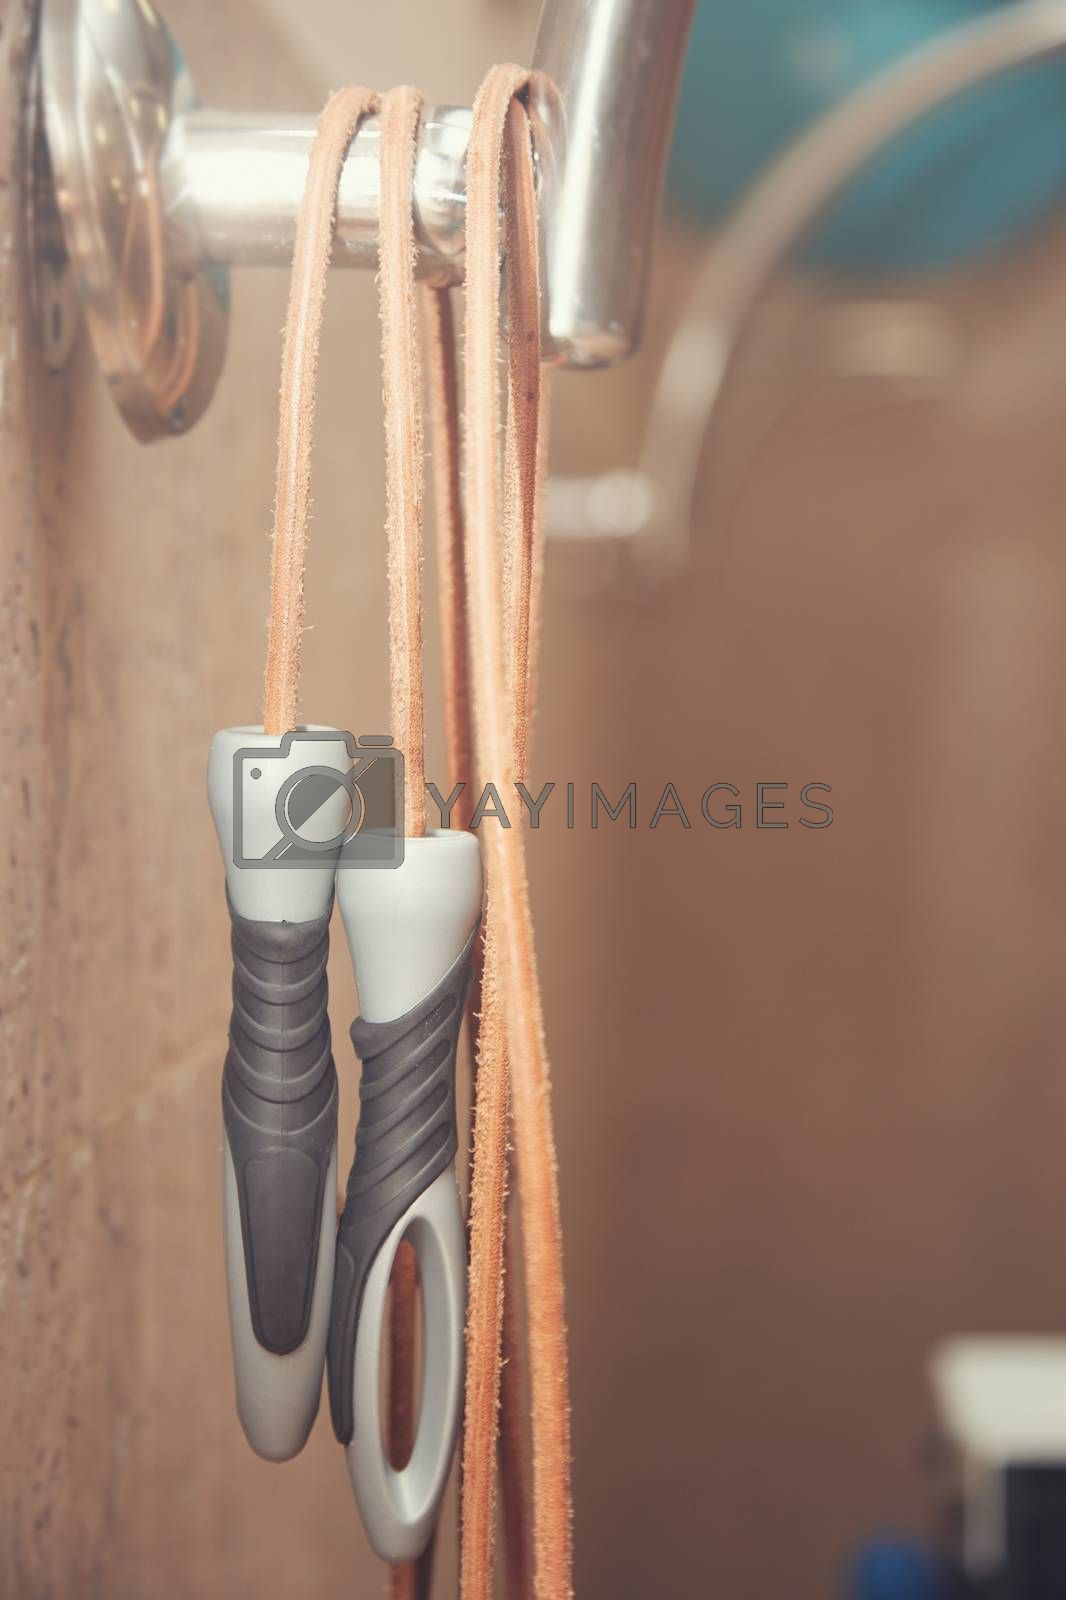 Jump rope in the gym class by Novic